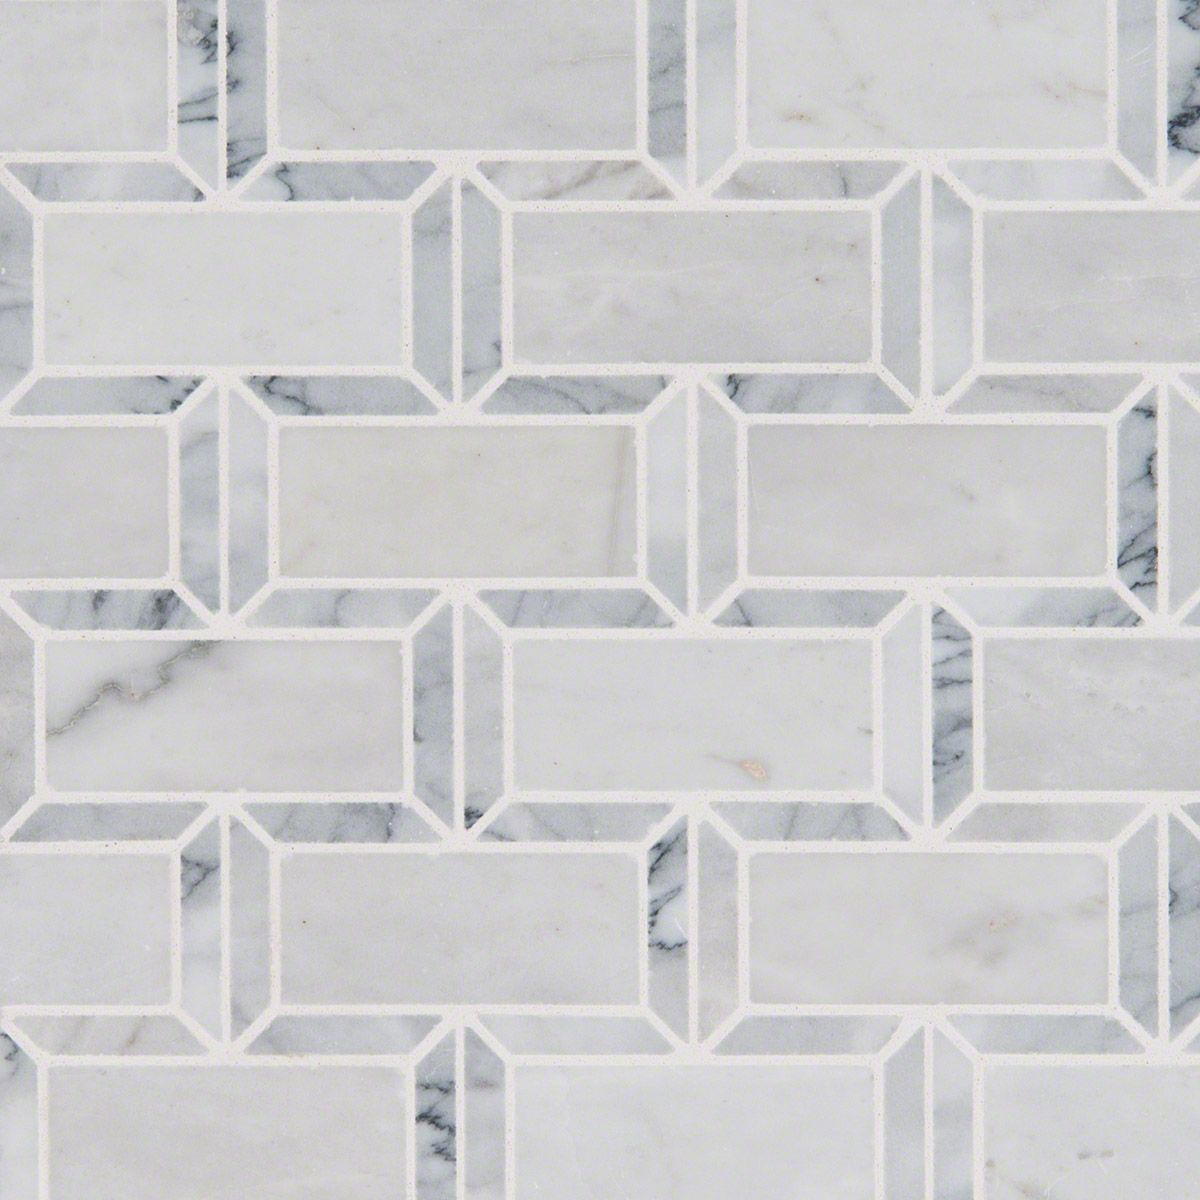 Subway tile arabescato carrara subway tile polished 2x4 subway tile arabescato carrara subway tile polished 2x4 dailygadgetfo Choice Image